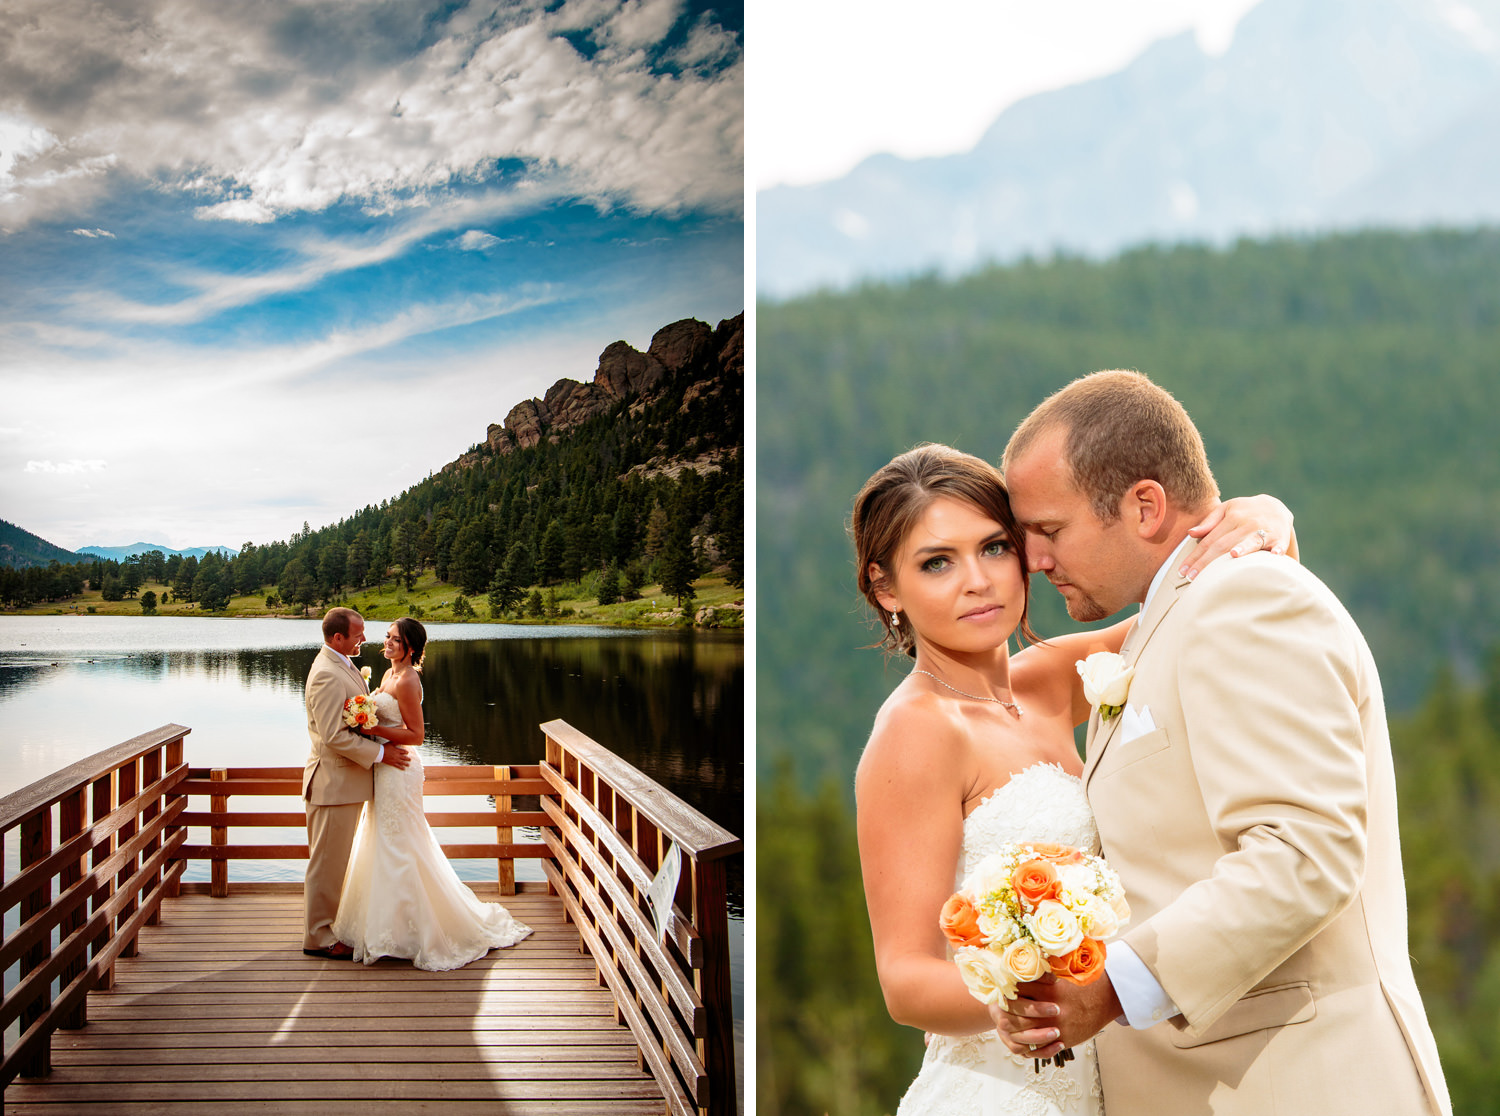 taharaa-mountain-lodge-wedding-estes-park-tomKphoto-146.jpg